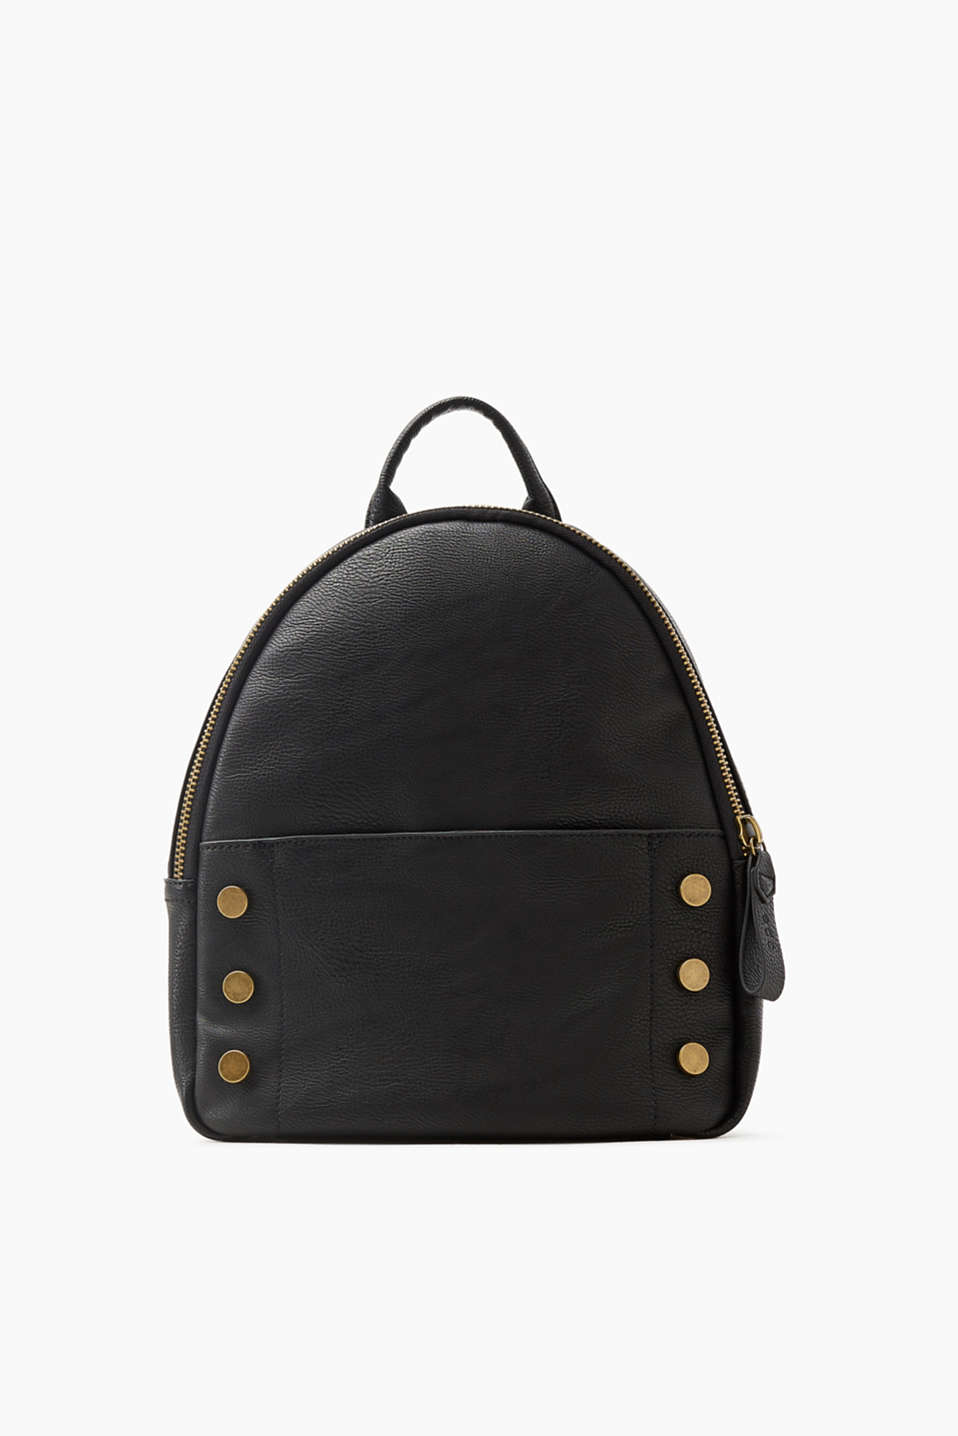 Compact design, cool studs: this shoulder bag combines spacious functionality with rocker style!